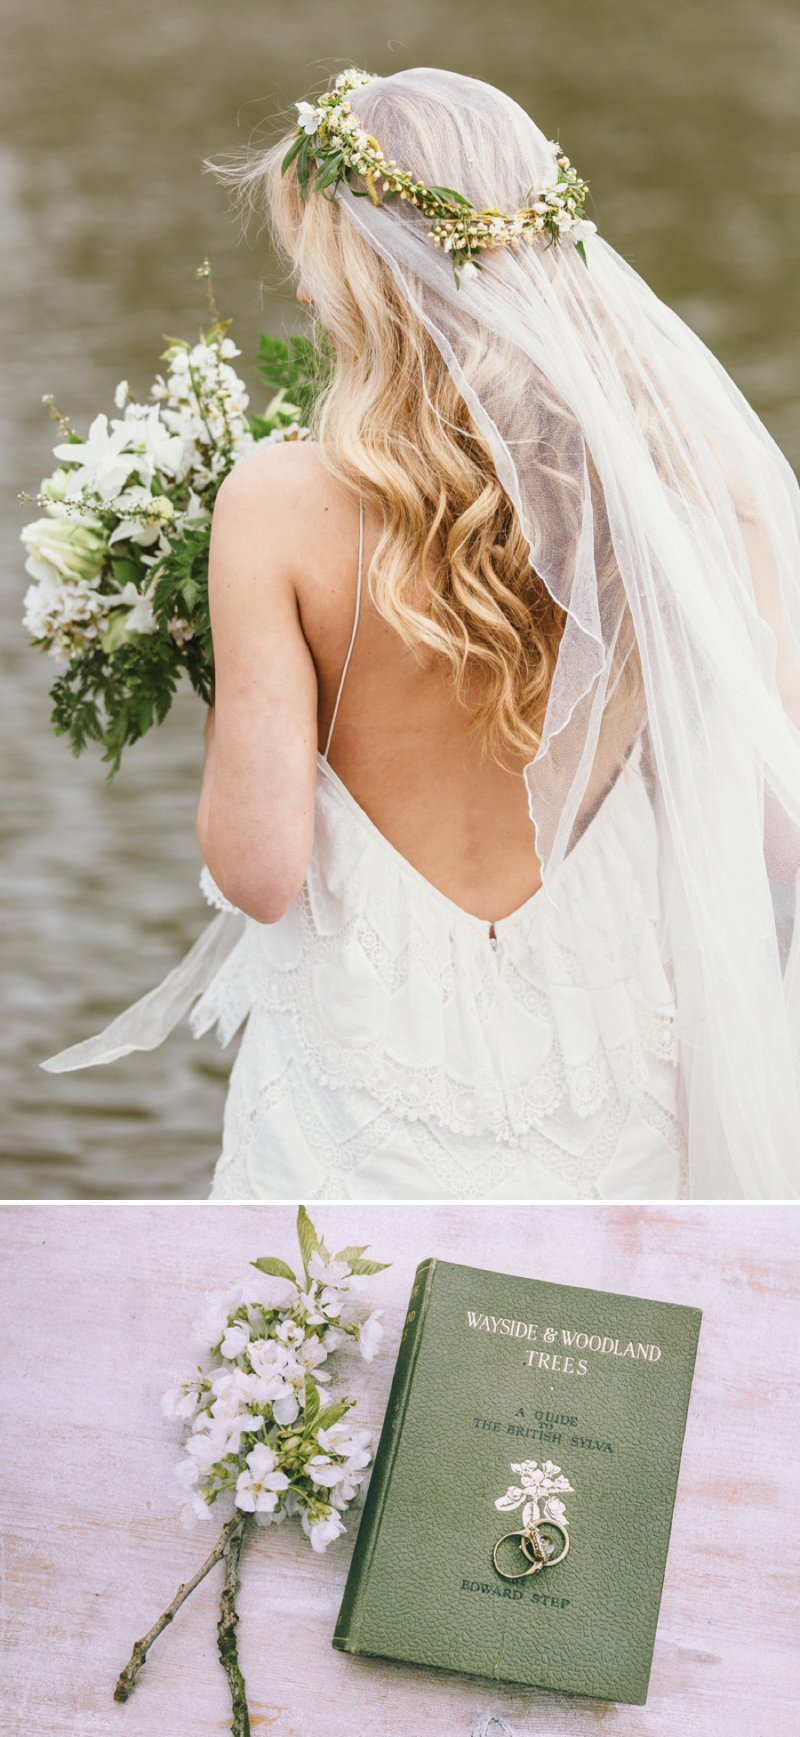 Rustic Bridal Shoot From Coco Venues And Katrina Otter Weddings And Events Inspired By The Promise Of Spring At Narborough Hall Gardens With Dresses From Rue De Seine Bridal With Images From Rebecca Goddard 11